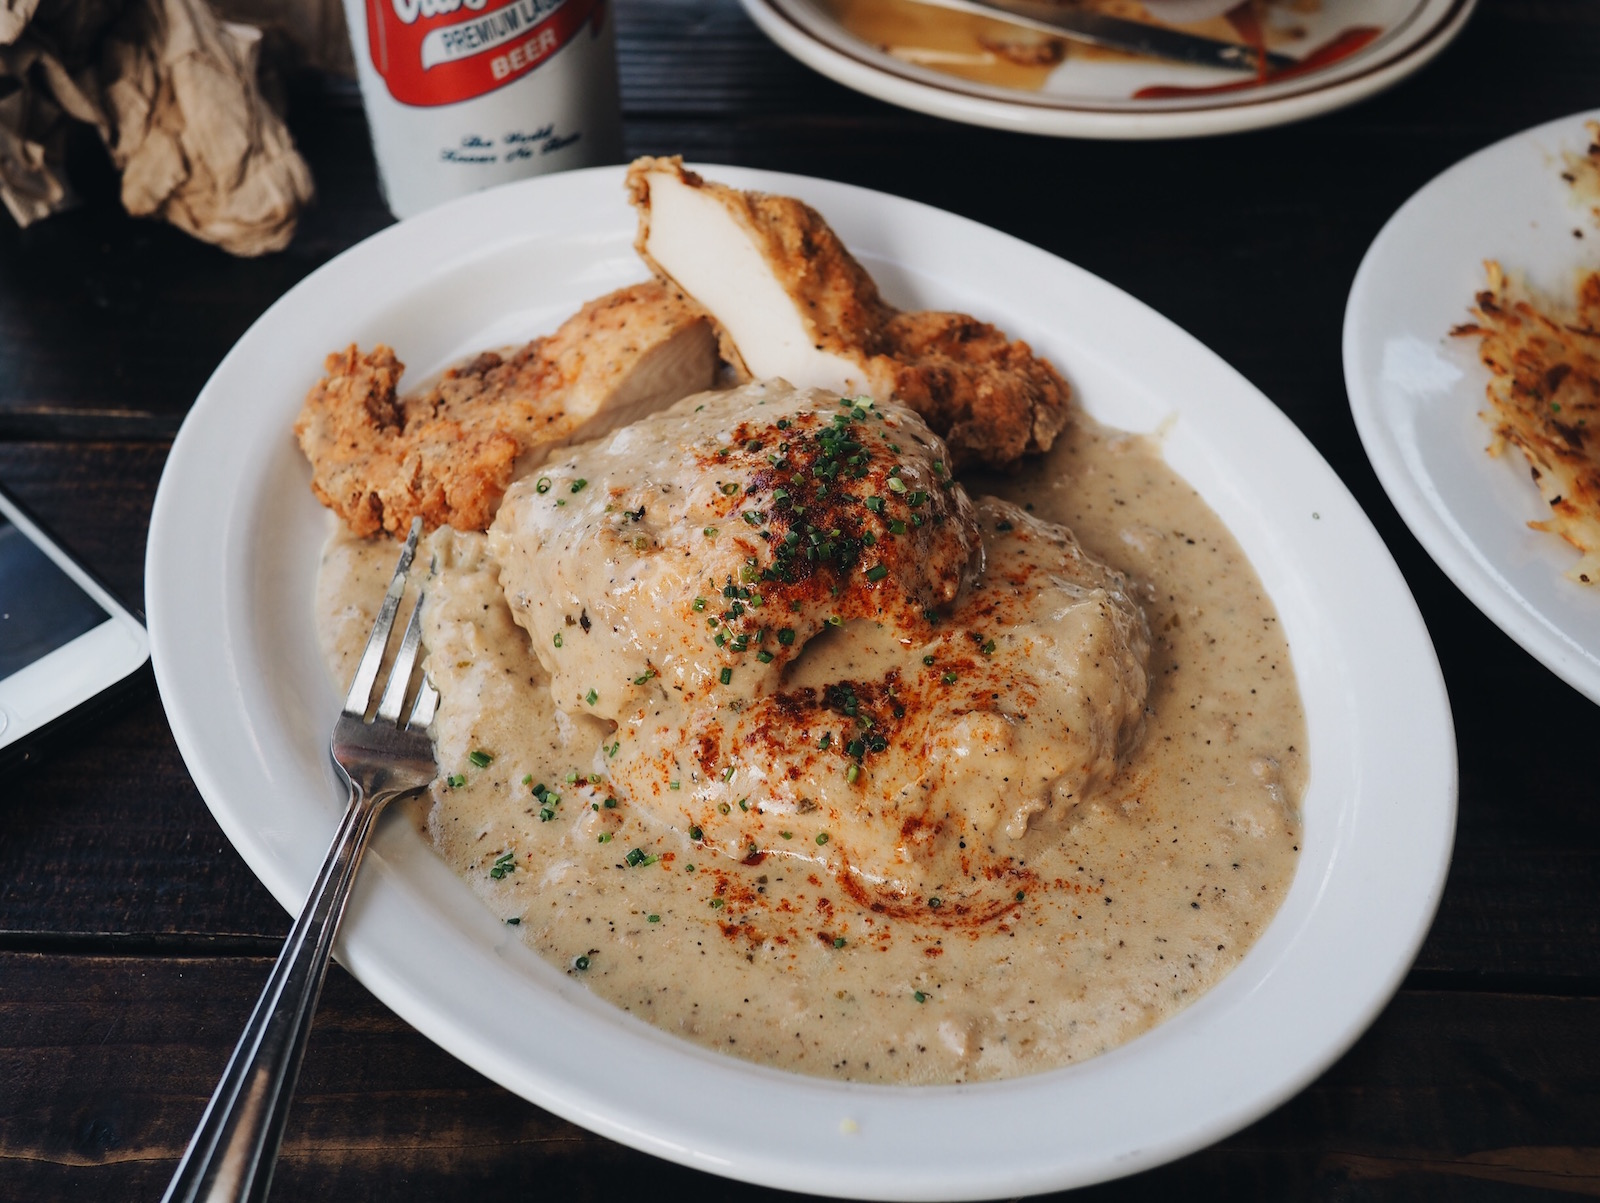 {Biscuits & gravy with fried chicken.}